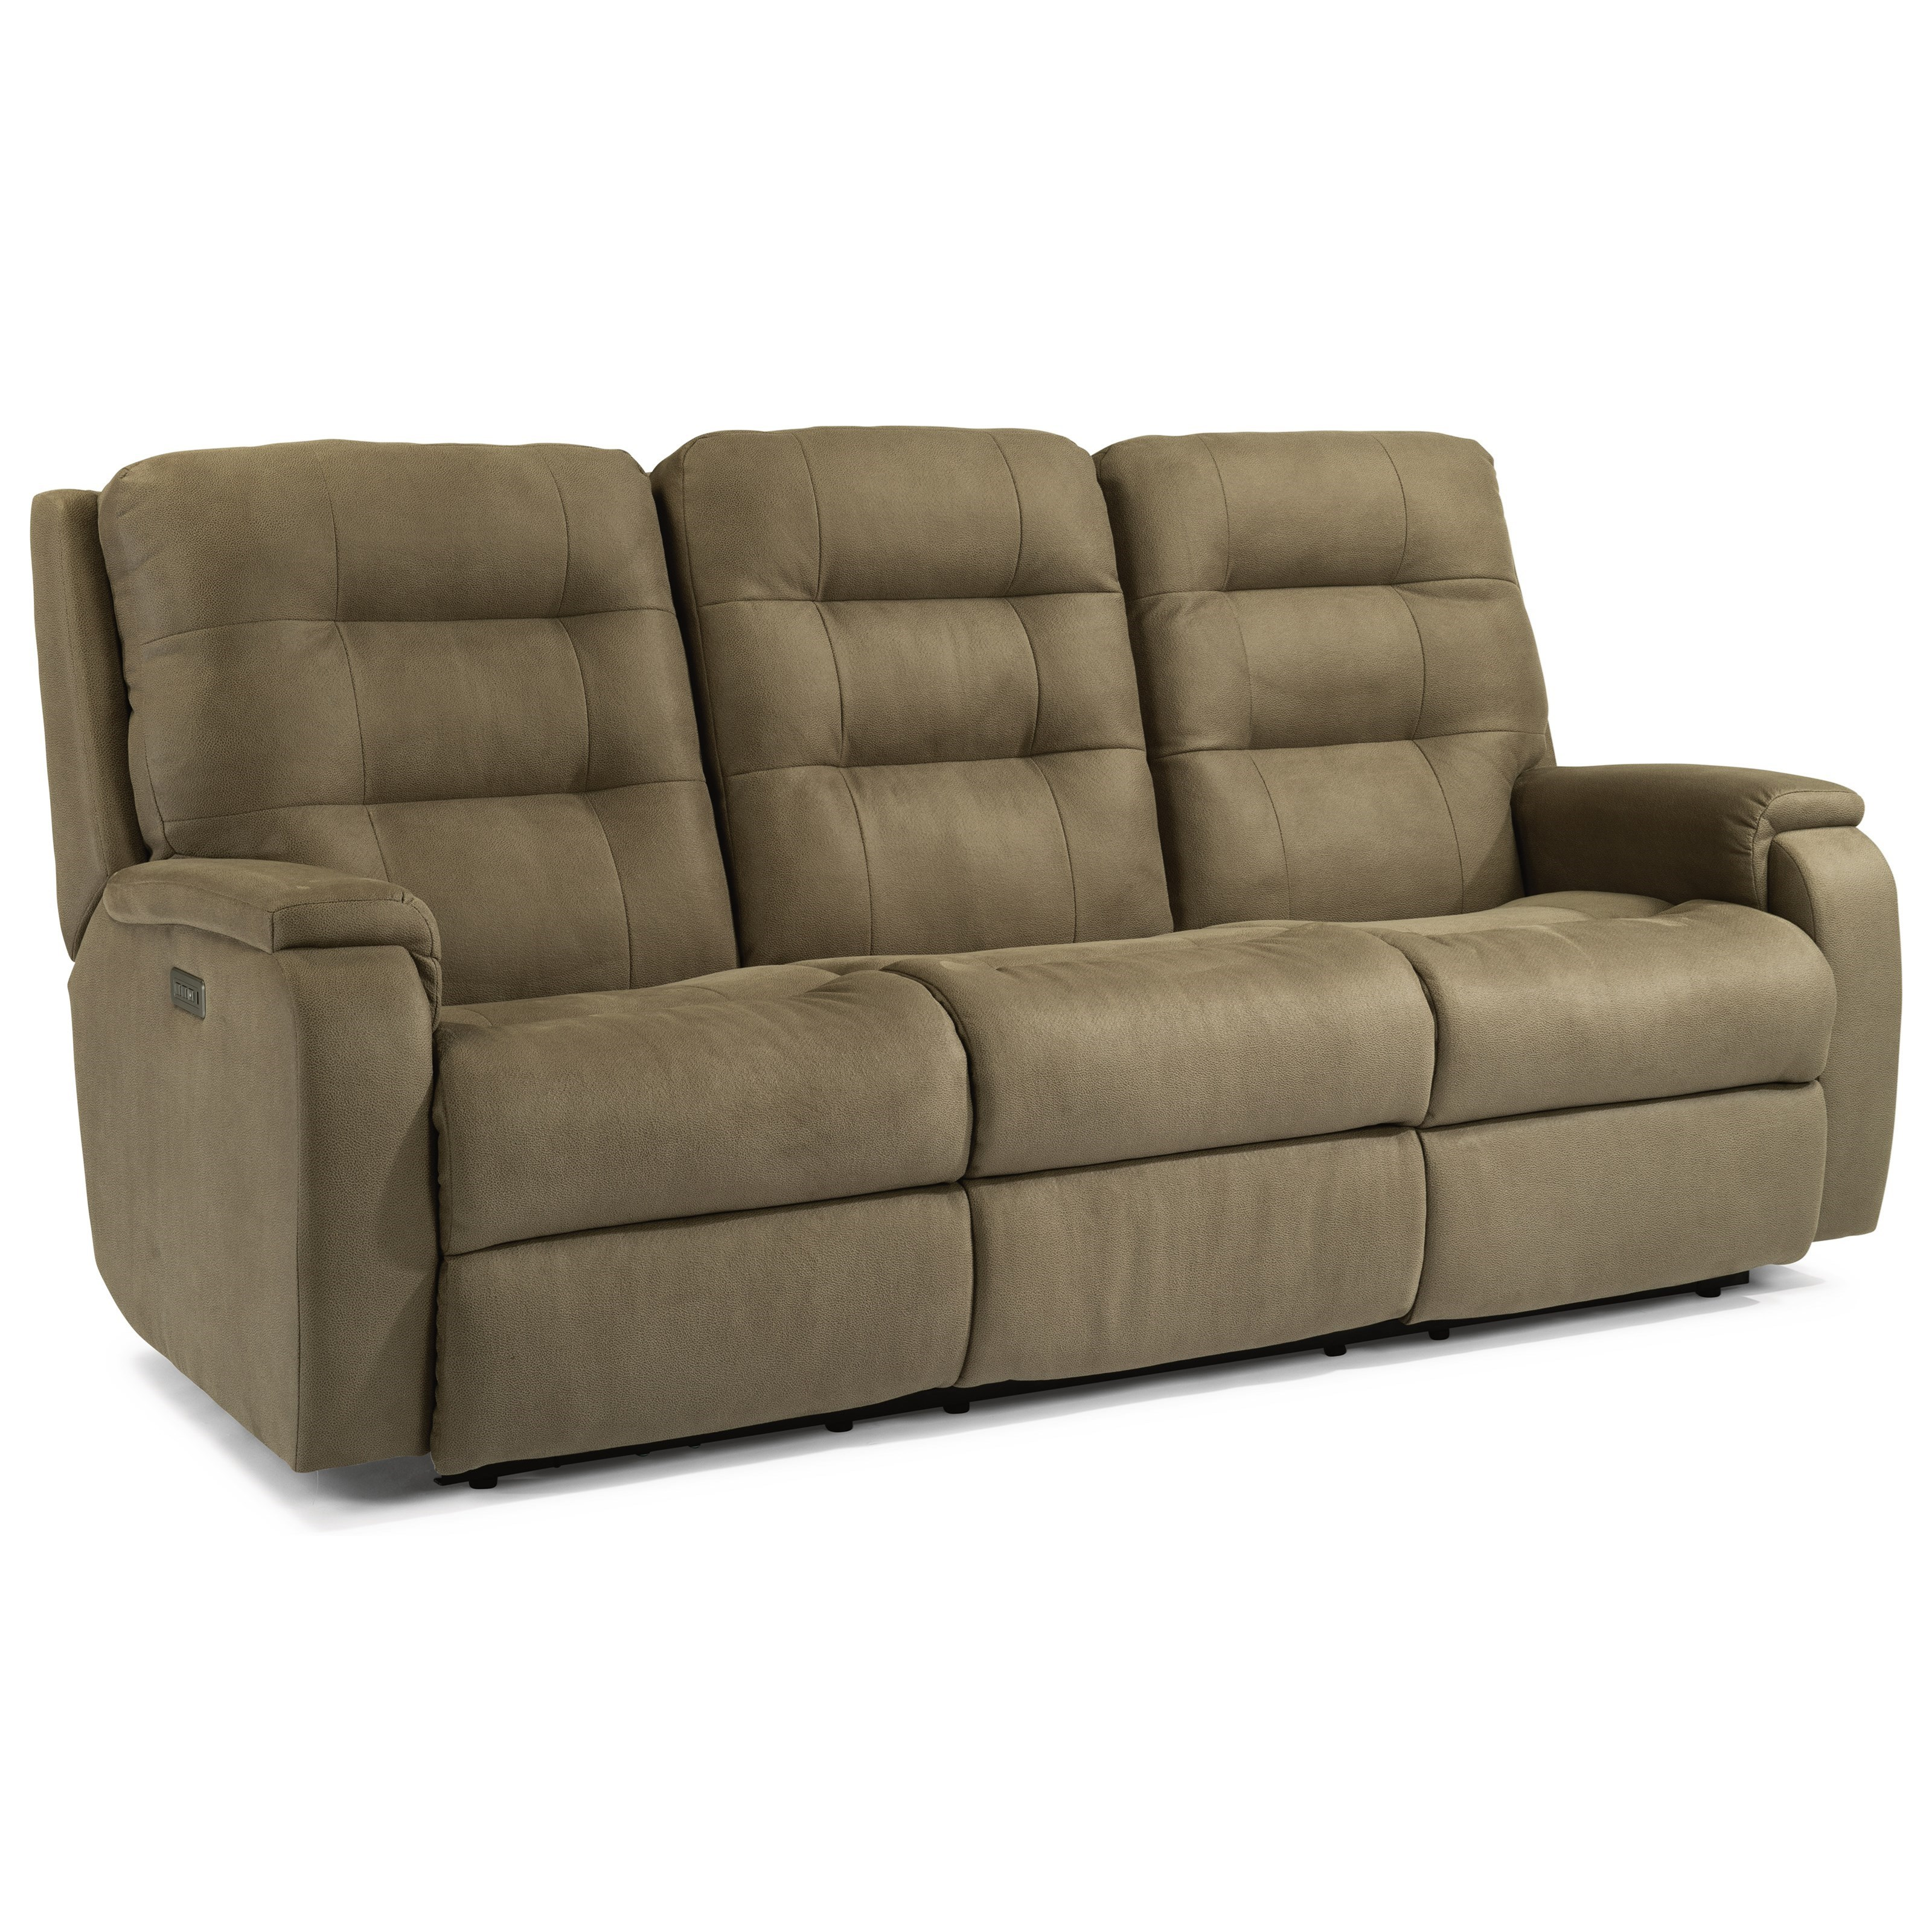 Guthrie Power Headrest Reclining Sofa by Flexsteel at Crowley Furniture & Mattress